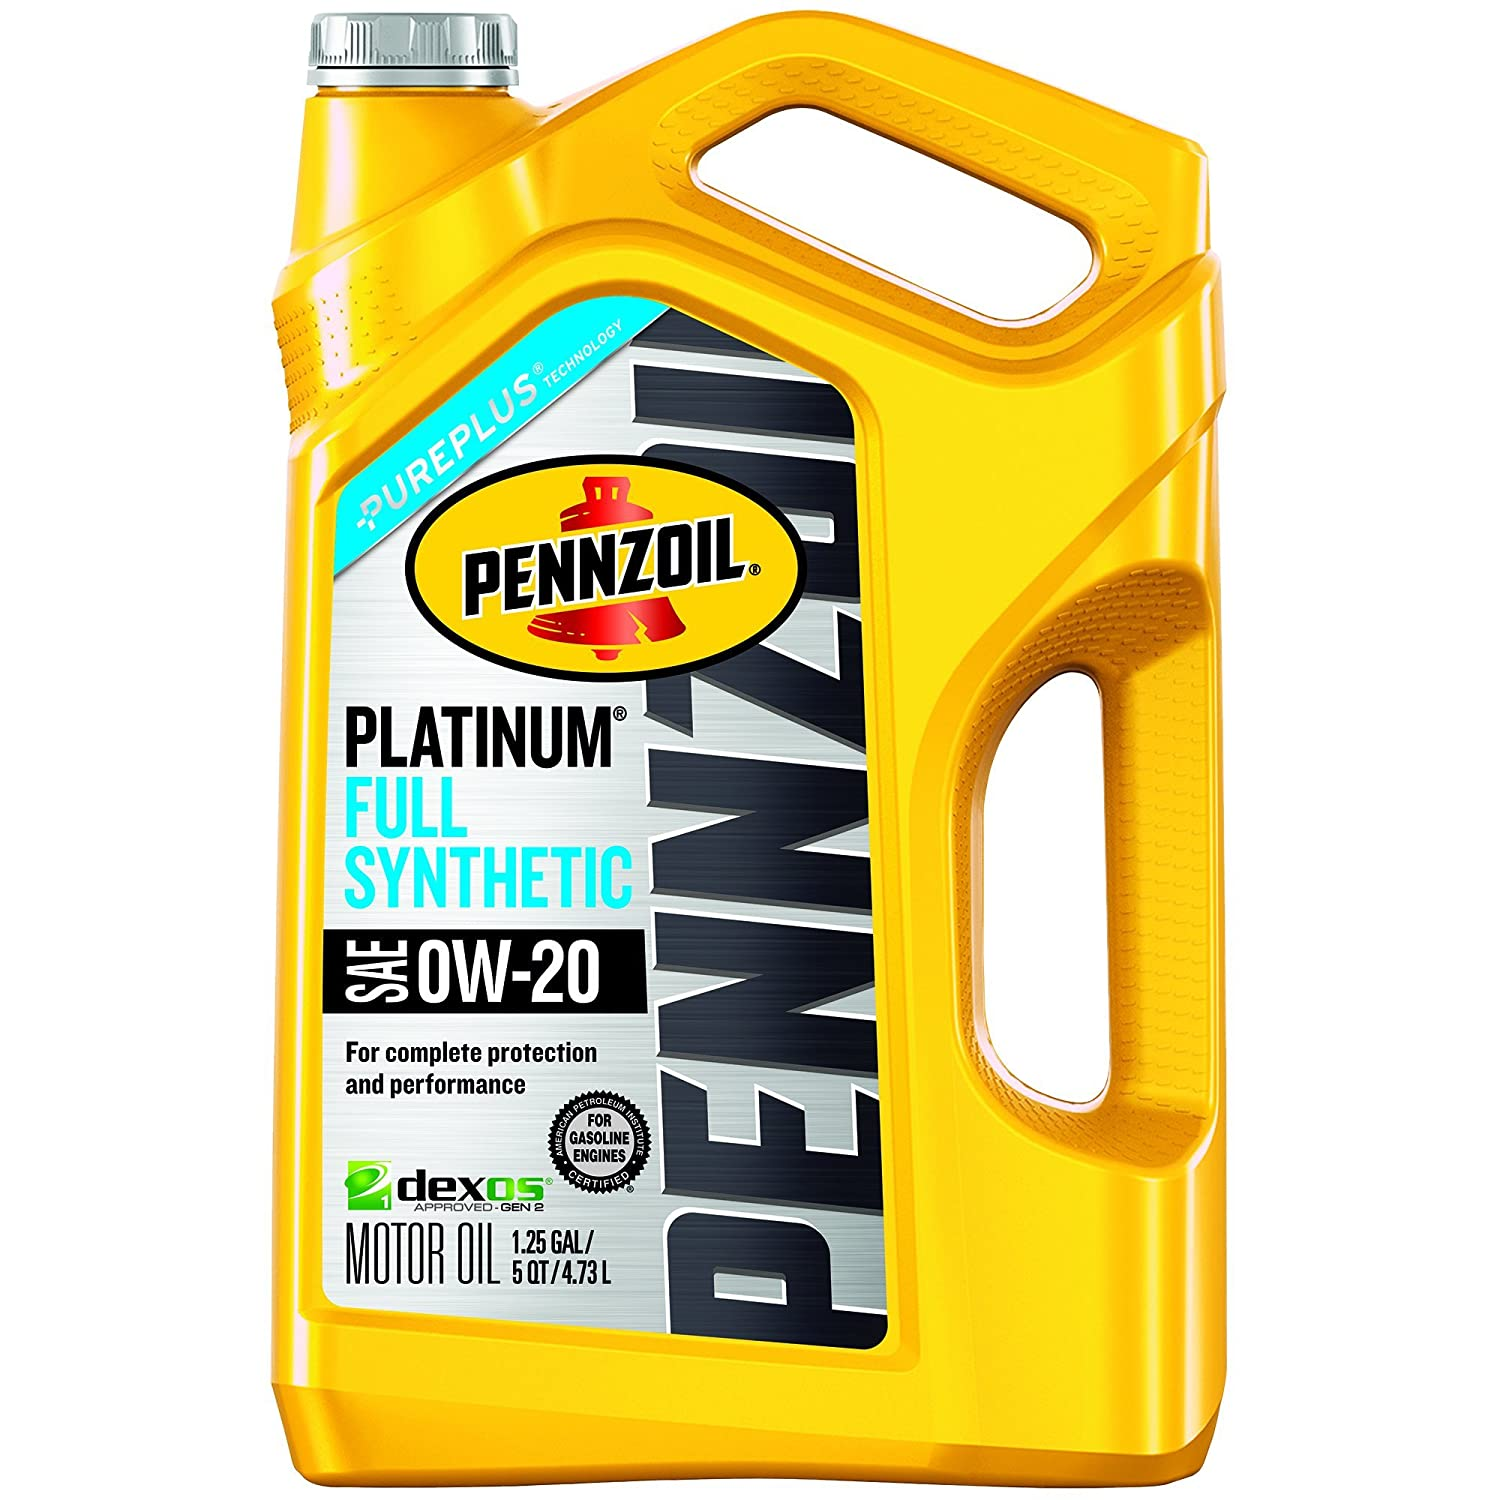 Pennzoil Platinum Full Synthetic Motor Oil 0W-20 - 5 Quart Jug